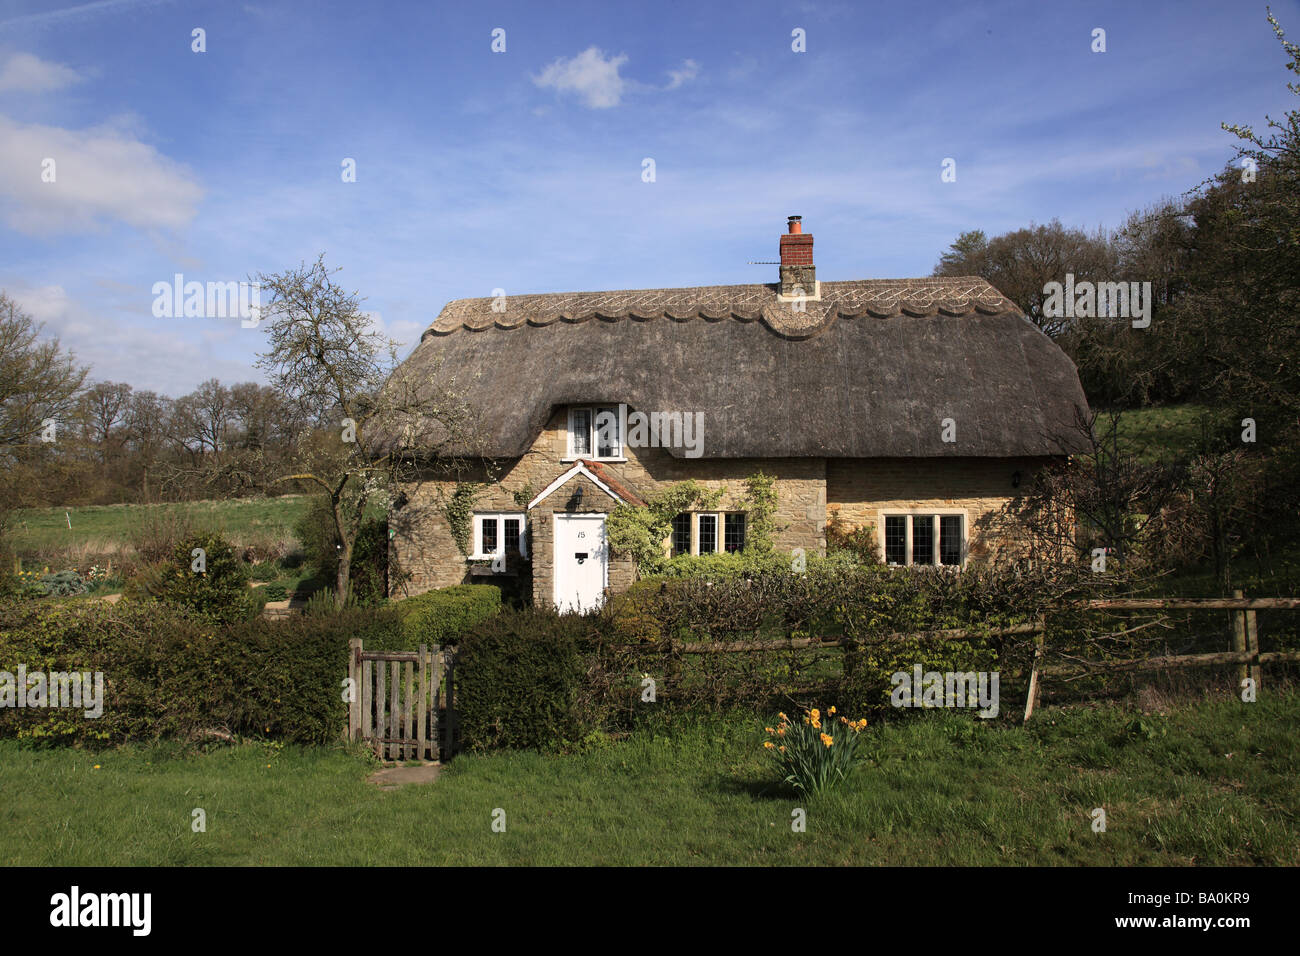 Thatched Cottage near Lacock, Wiltshire, England - Stock Image